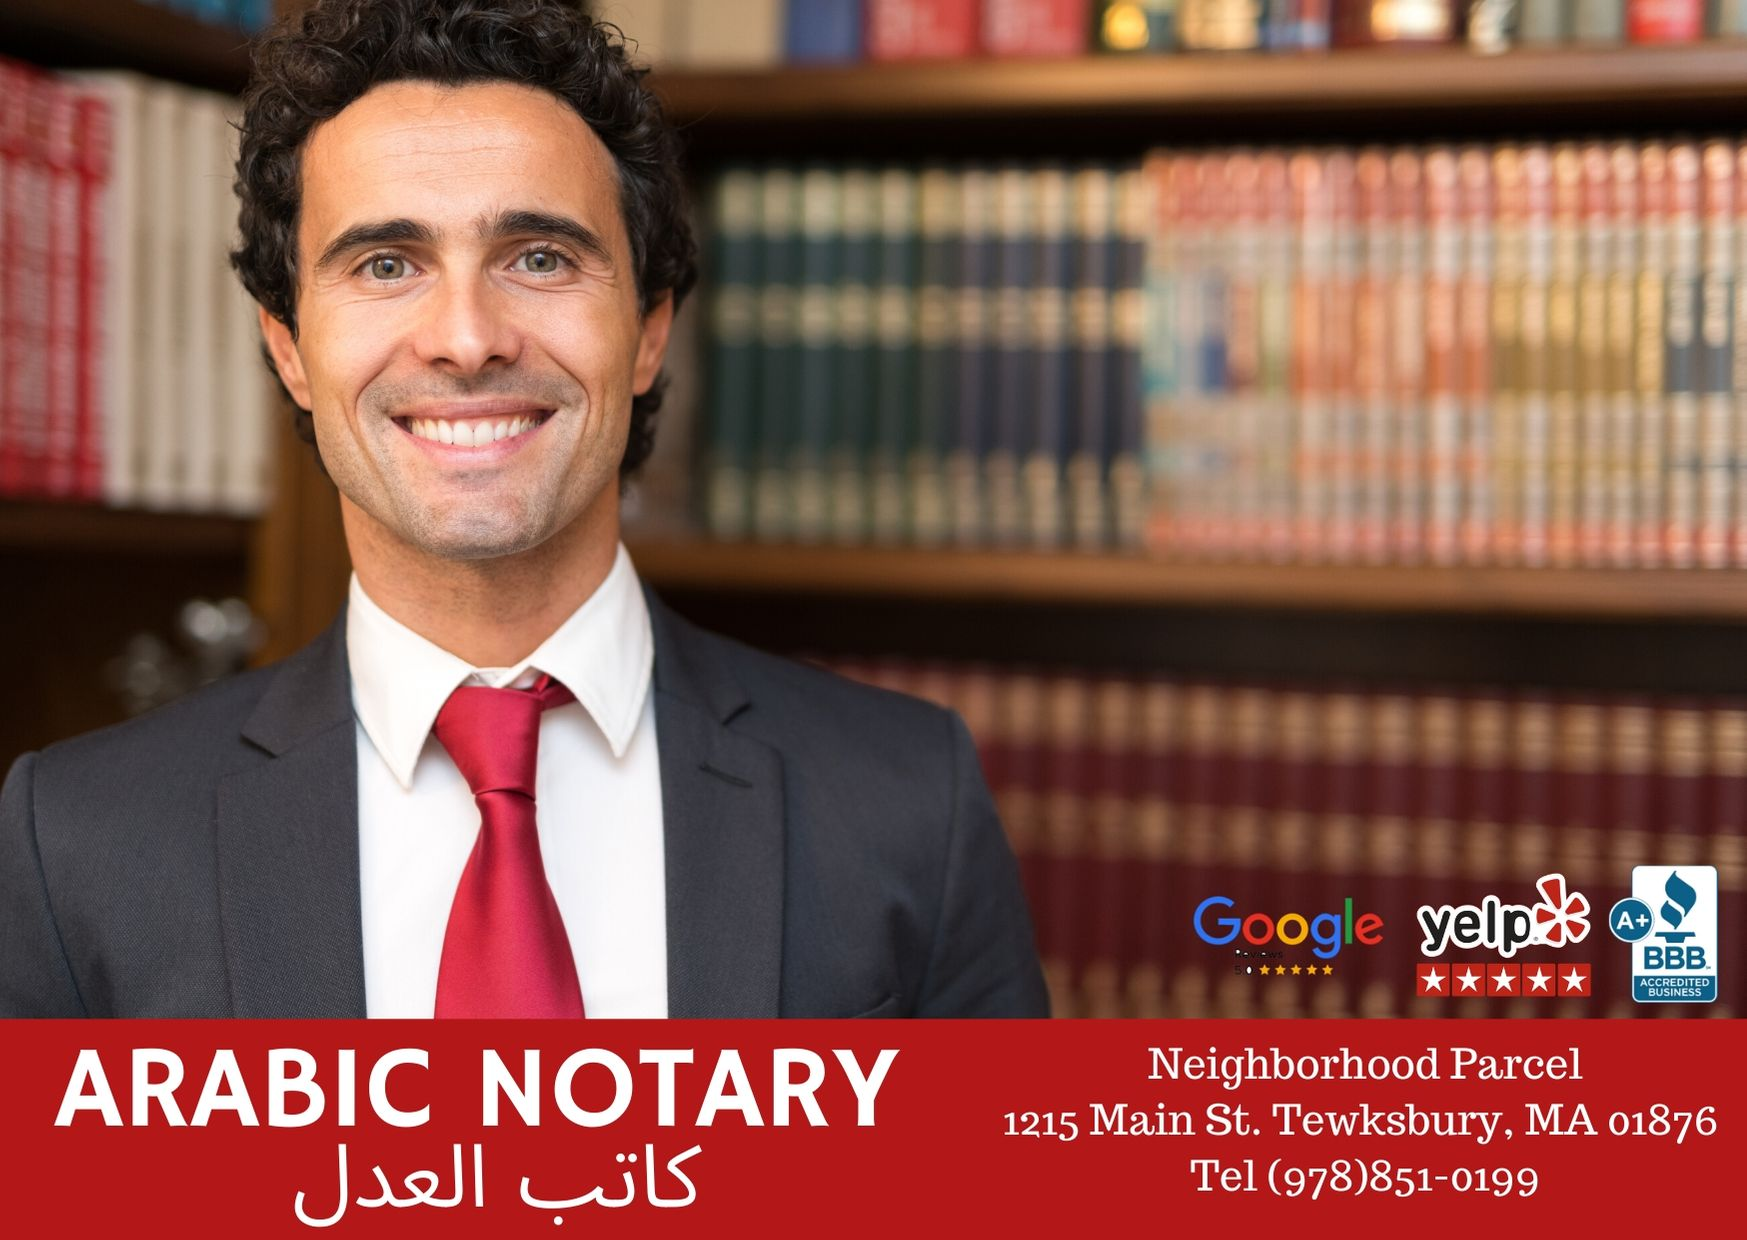 Arabic Notary Service In Massachusetts